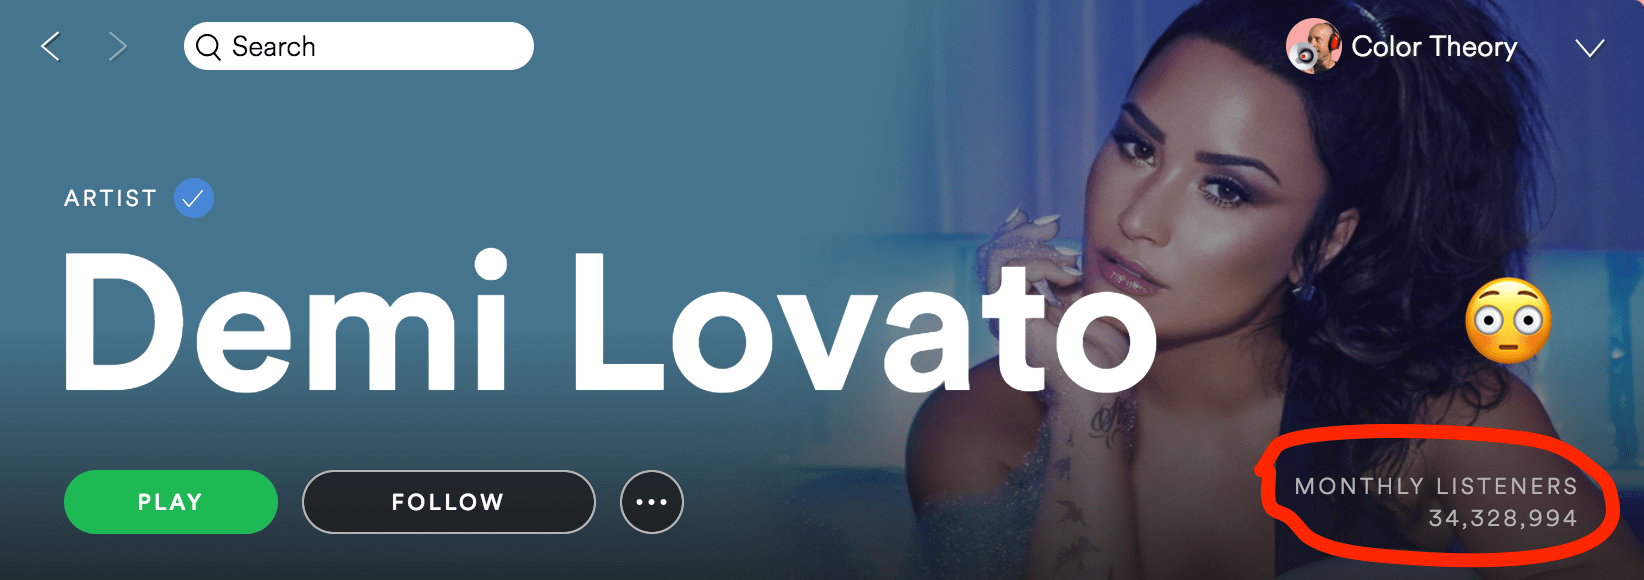 Demi Lovato on Spotify